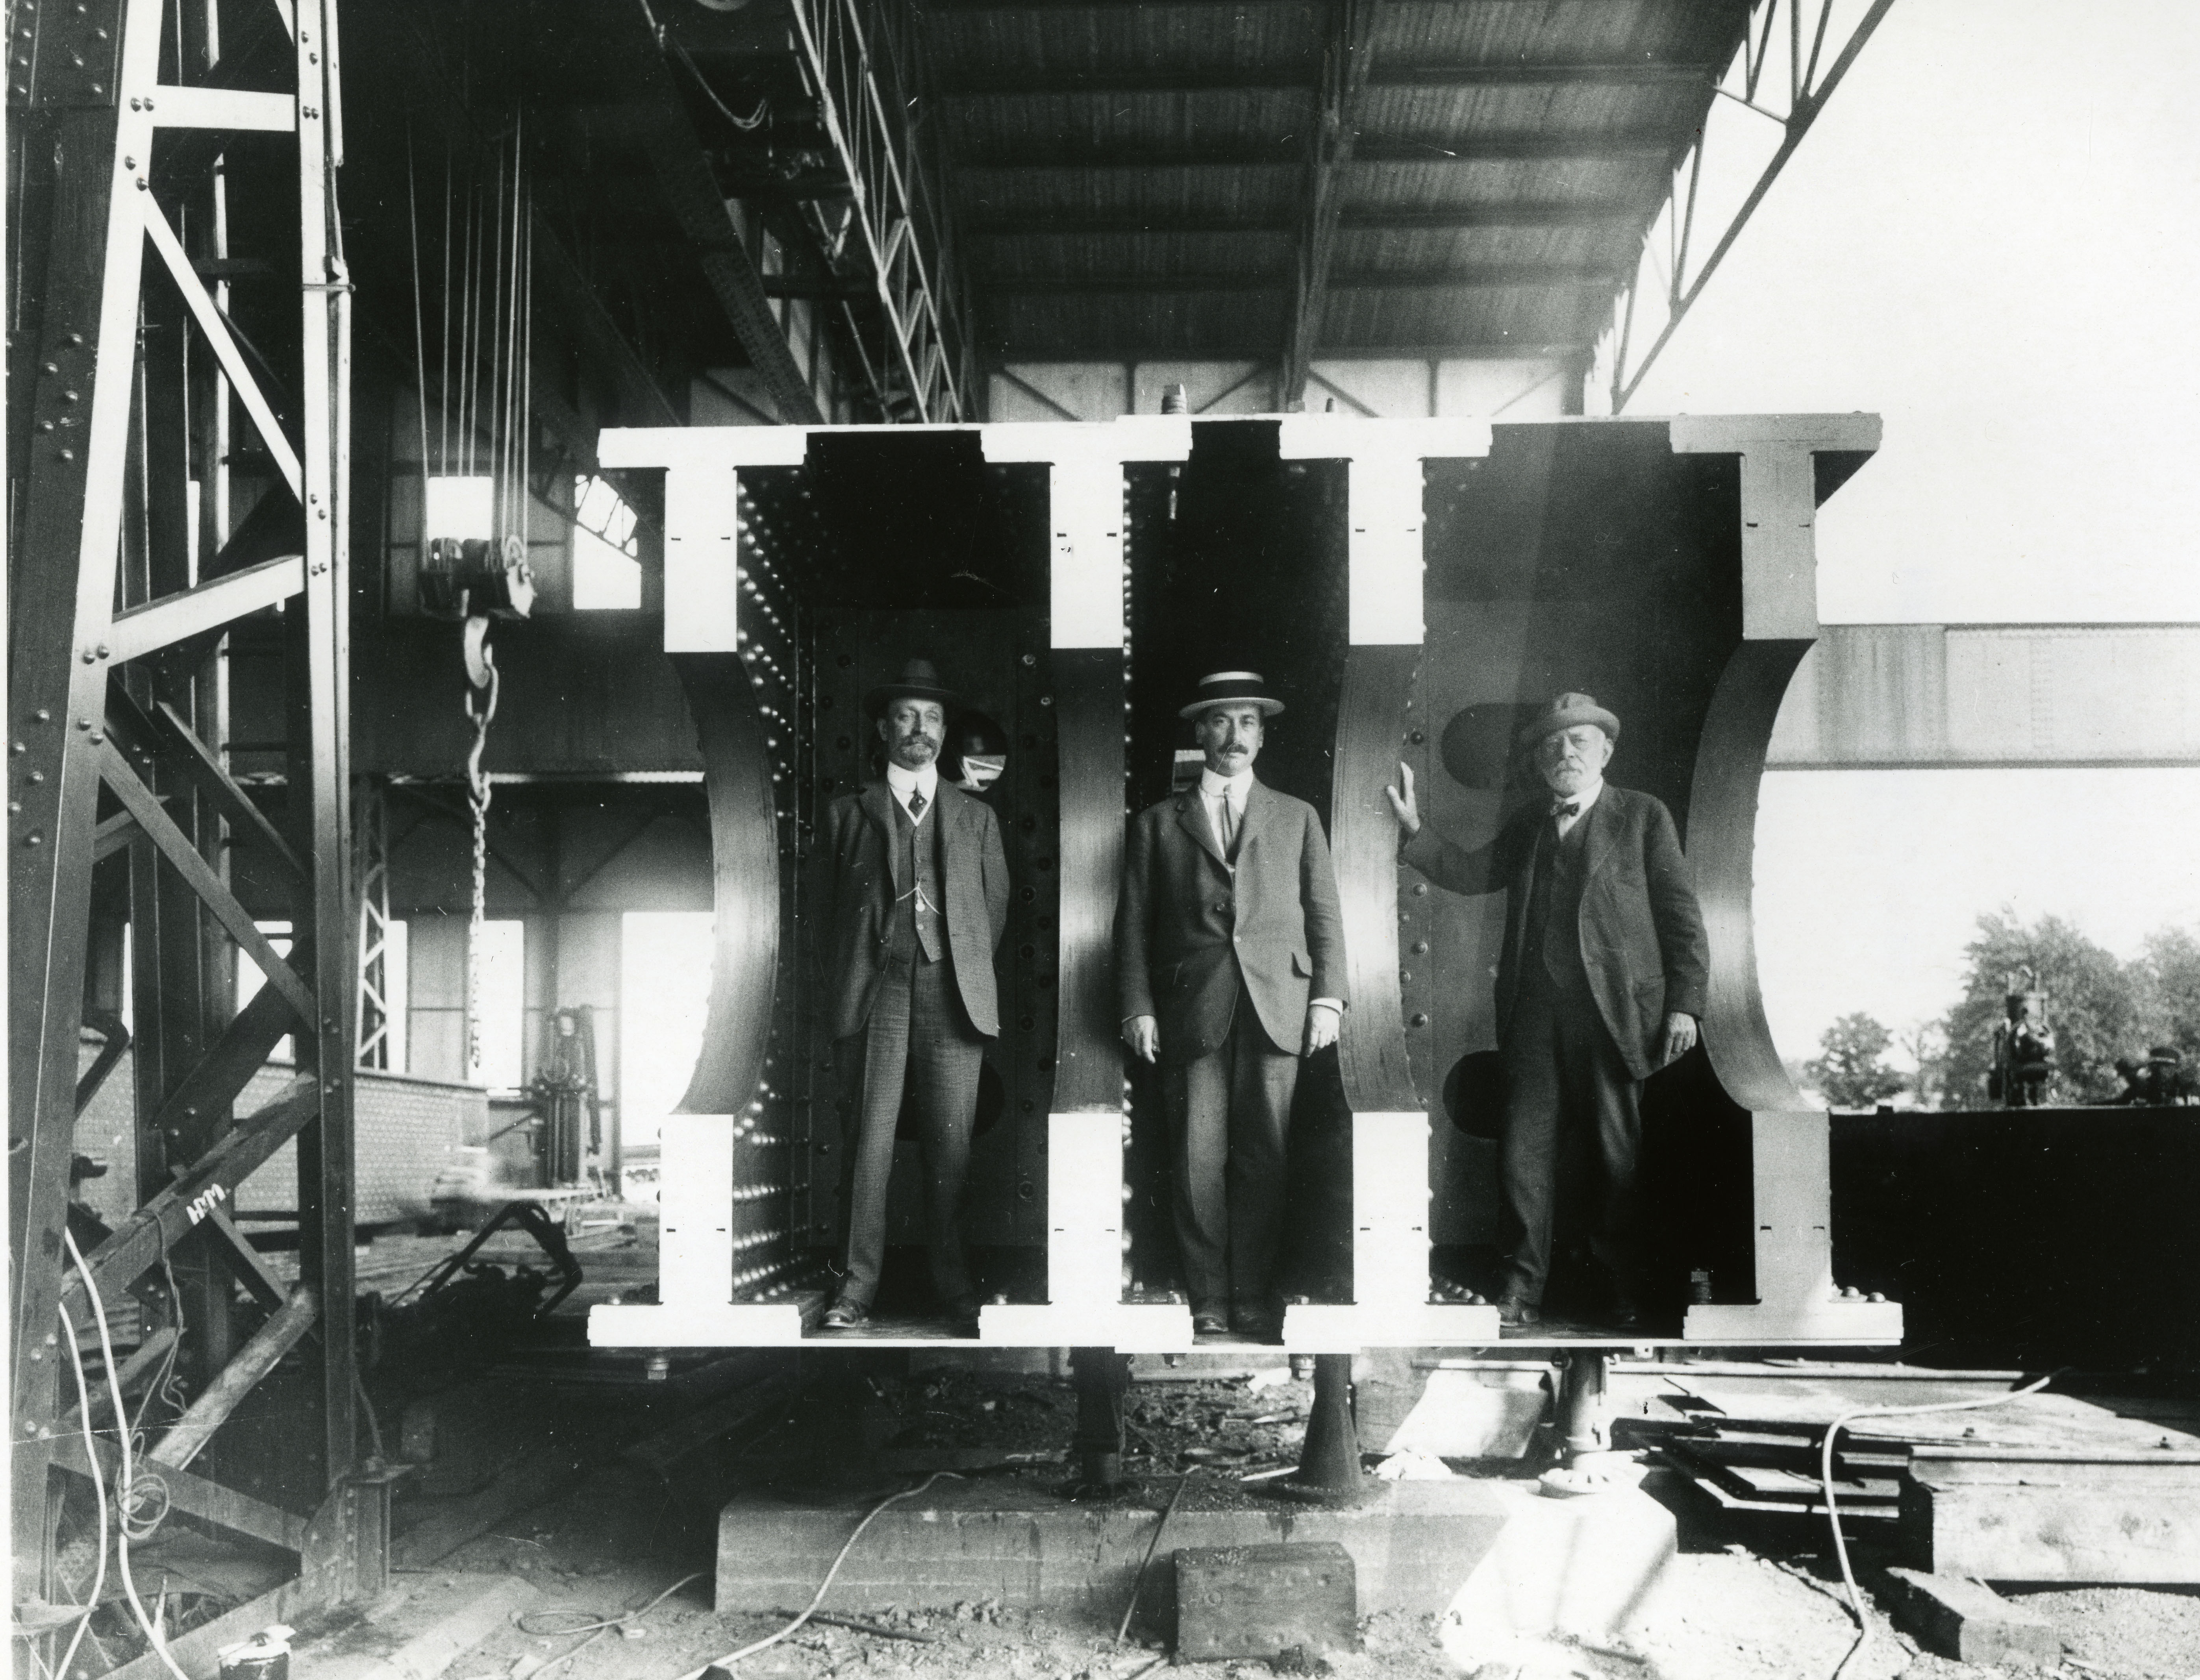 Photograph of Quebec Bridge Board of Engineers standing in bridge cantilever, left to right: Ralph Modjeski, Charles Monsarrat and C.C. Schneider, circa 1910s.